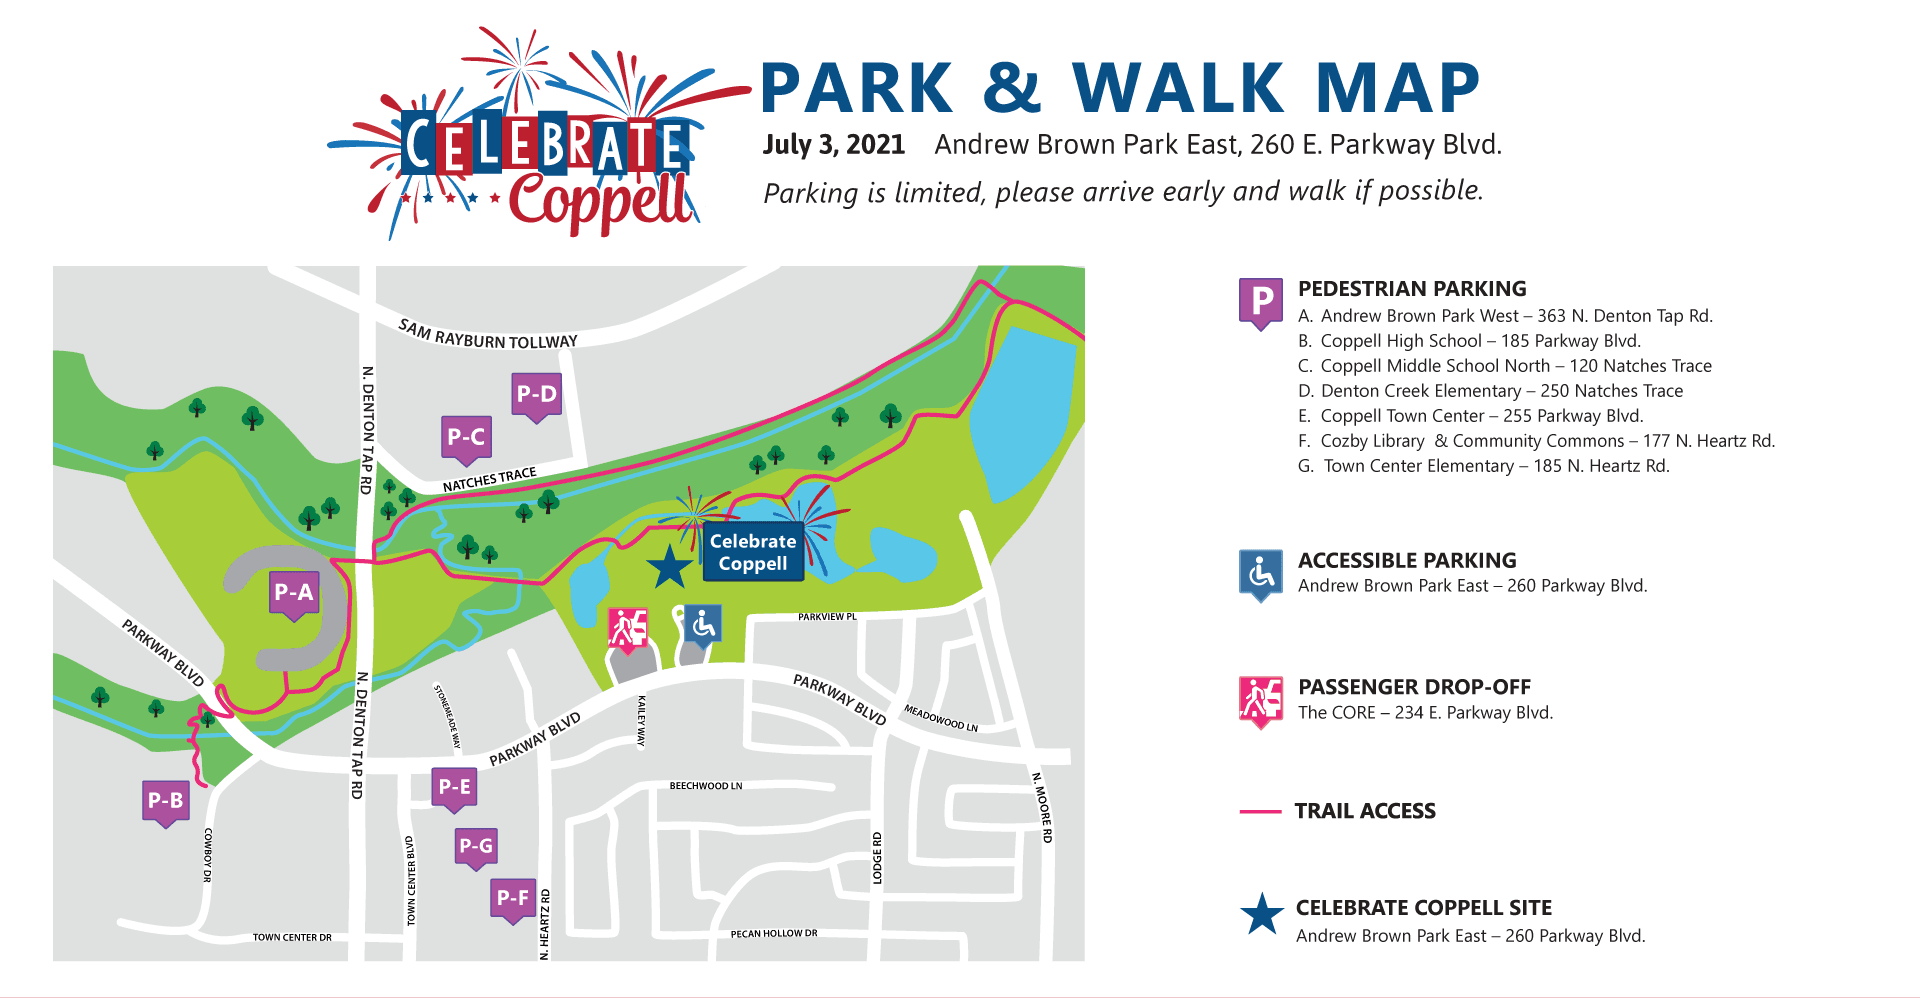 Map with labels for parking around Andrew Brown Park East